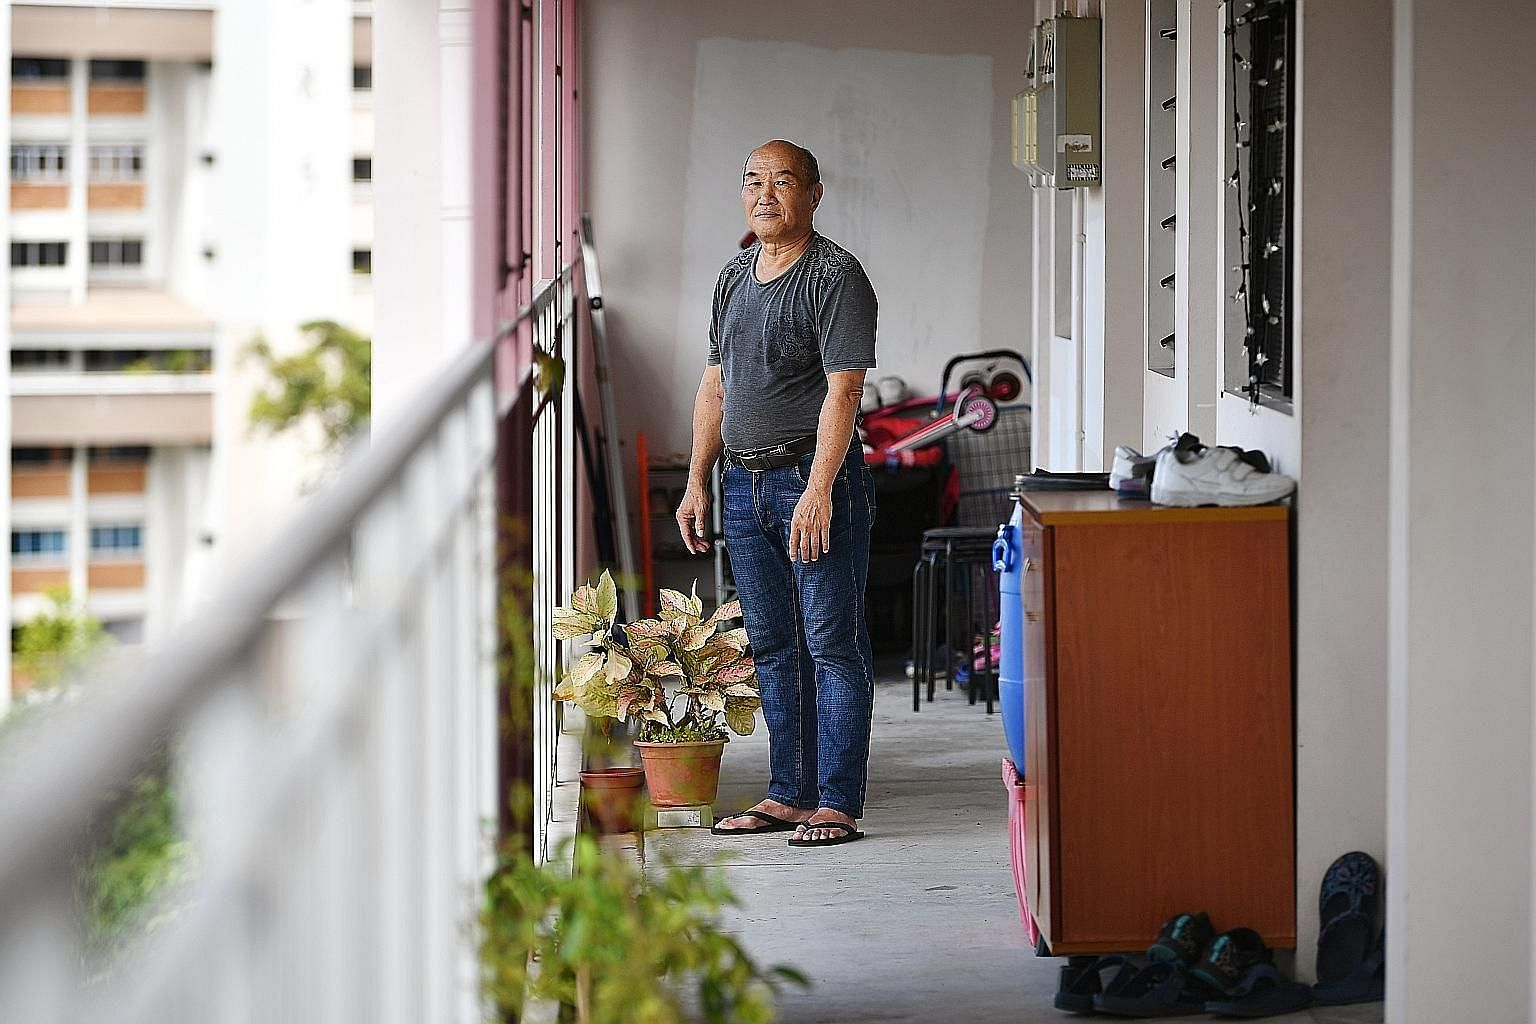 Mr Chow Yit Keong, 66, outside his one-room rental flat. The retired odd-job worker gets by on about $500 a month. A study out last month suggests that he may need more money if he wants to be able to thrive in his golden years, rather than just surv